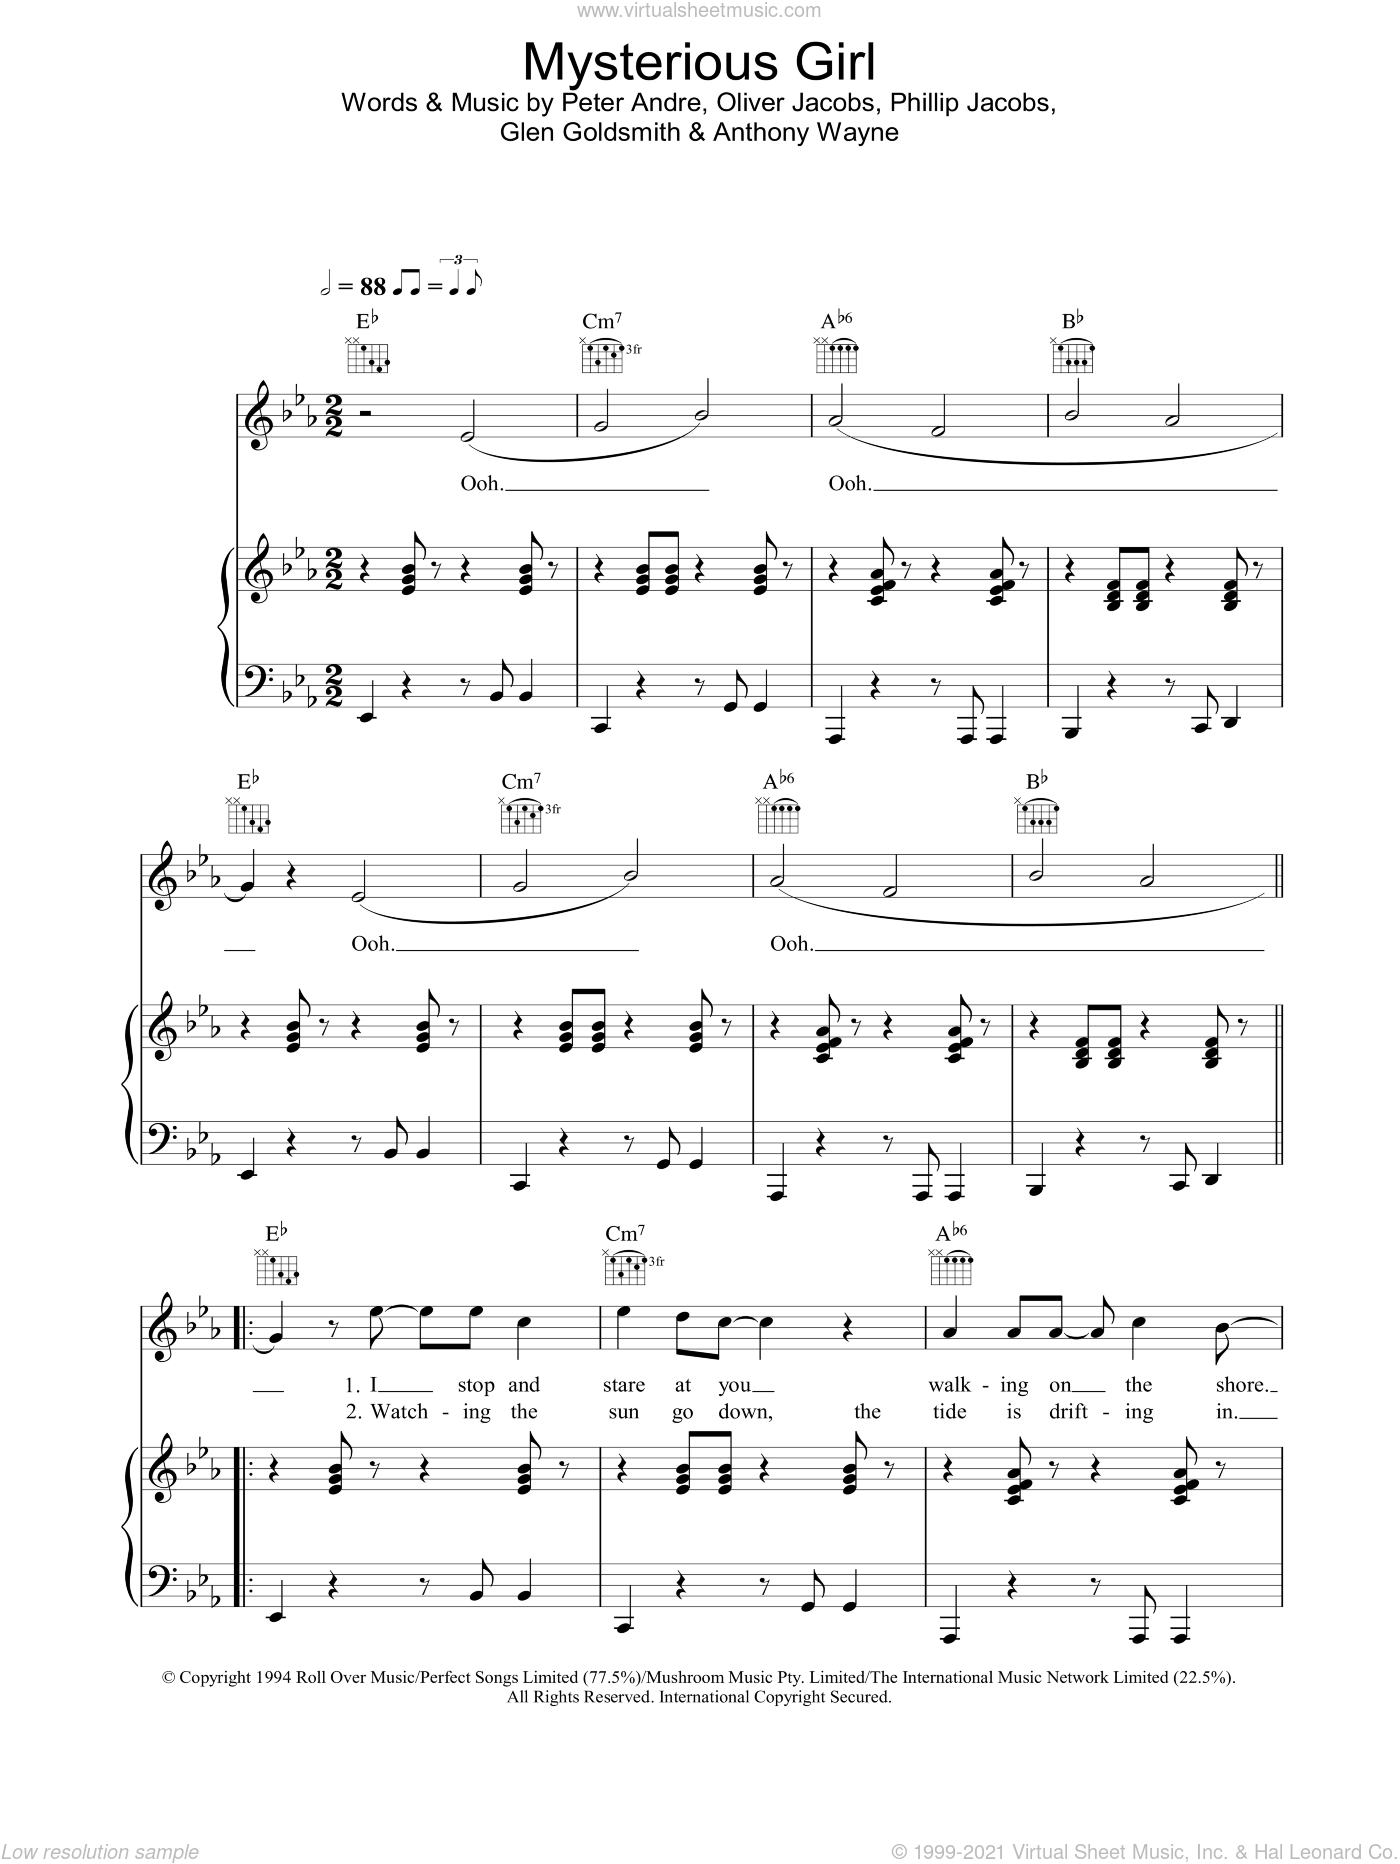 Mysterious Girl sheet music for voice, piano or guitar by Peter Andre, intermediate skill level